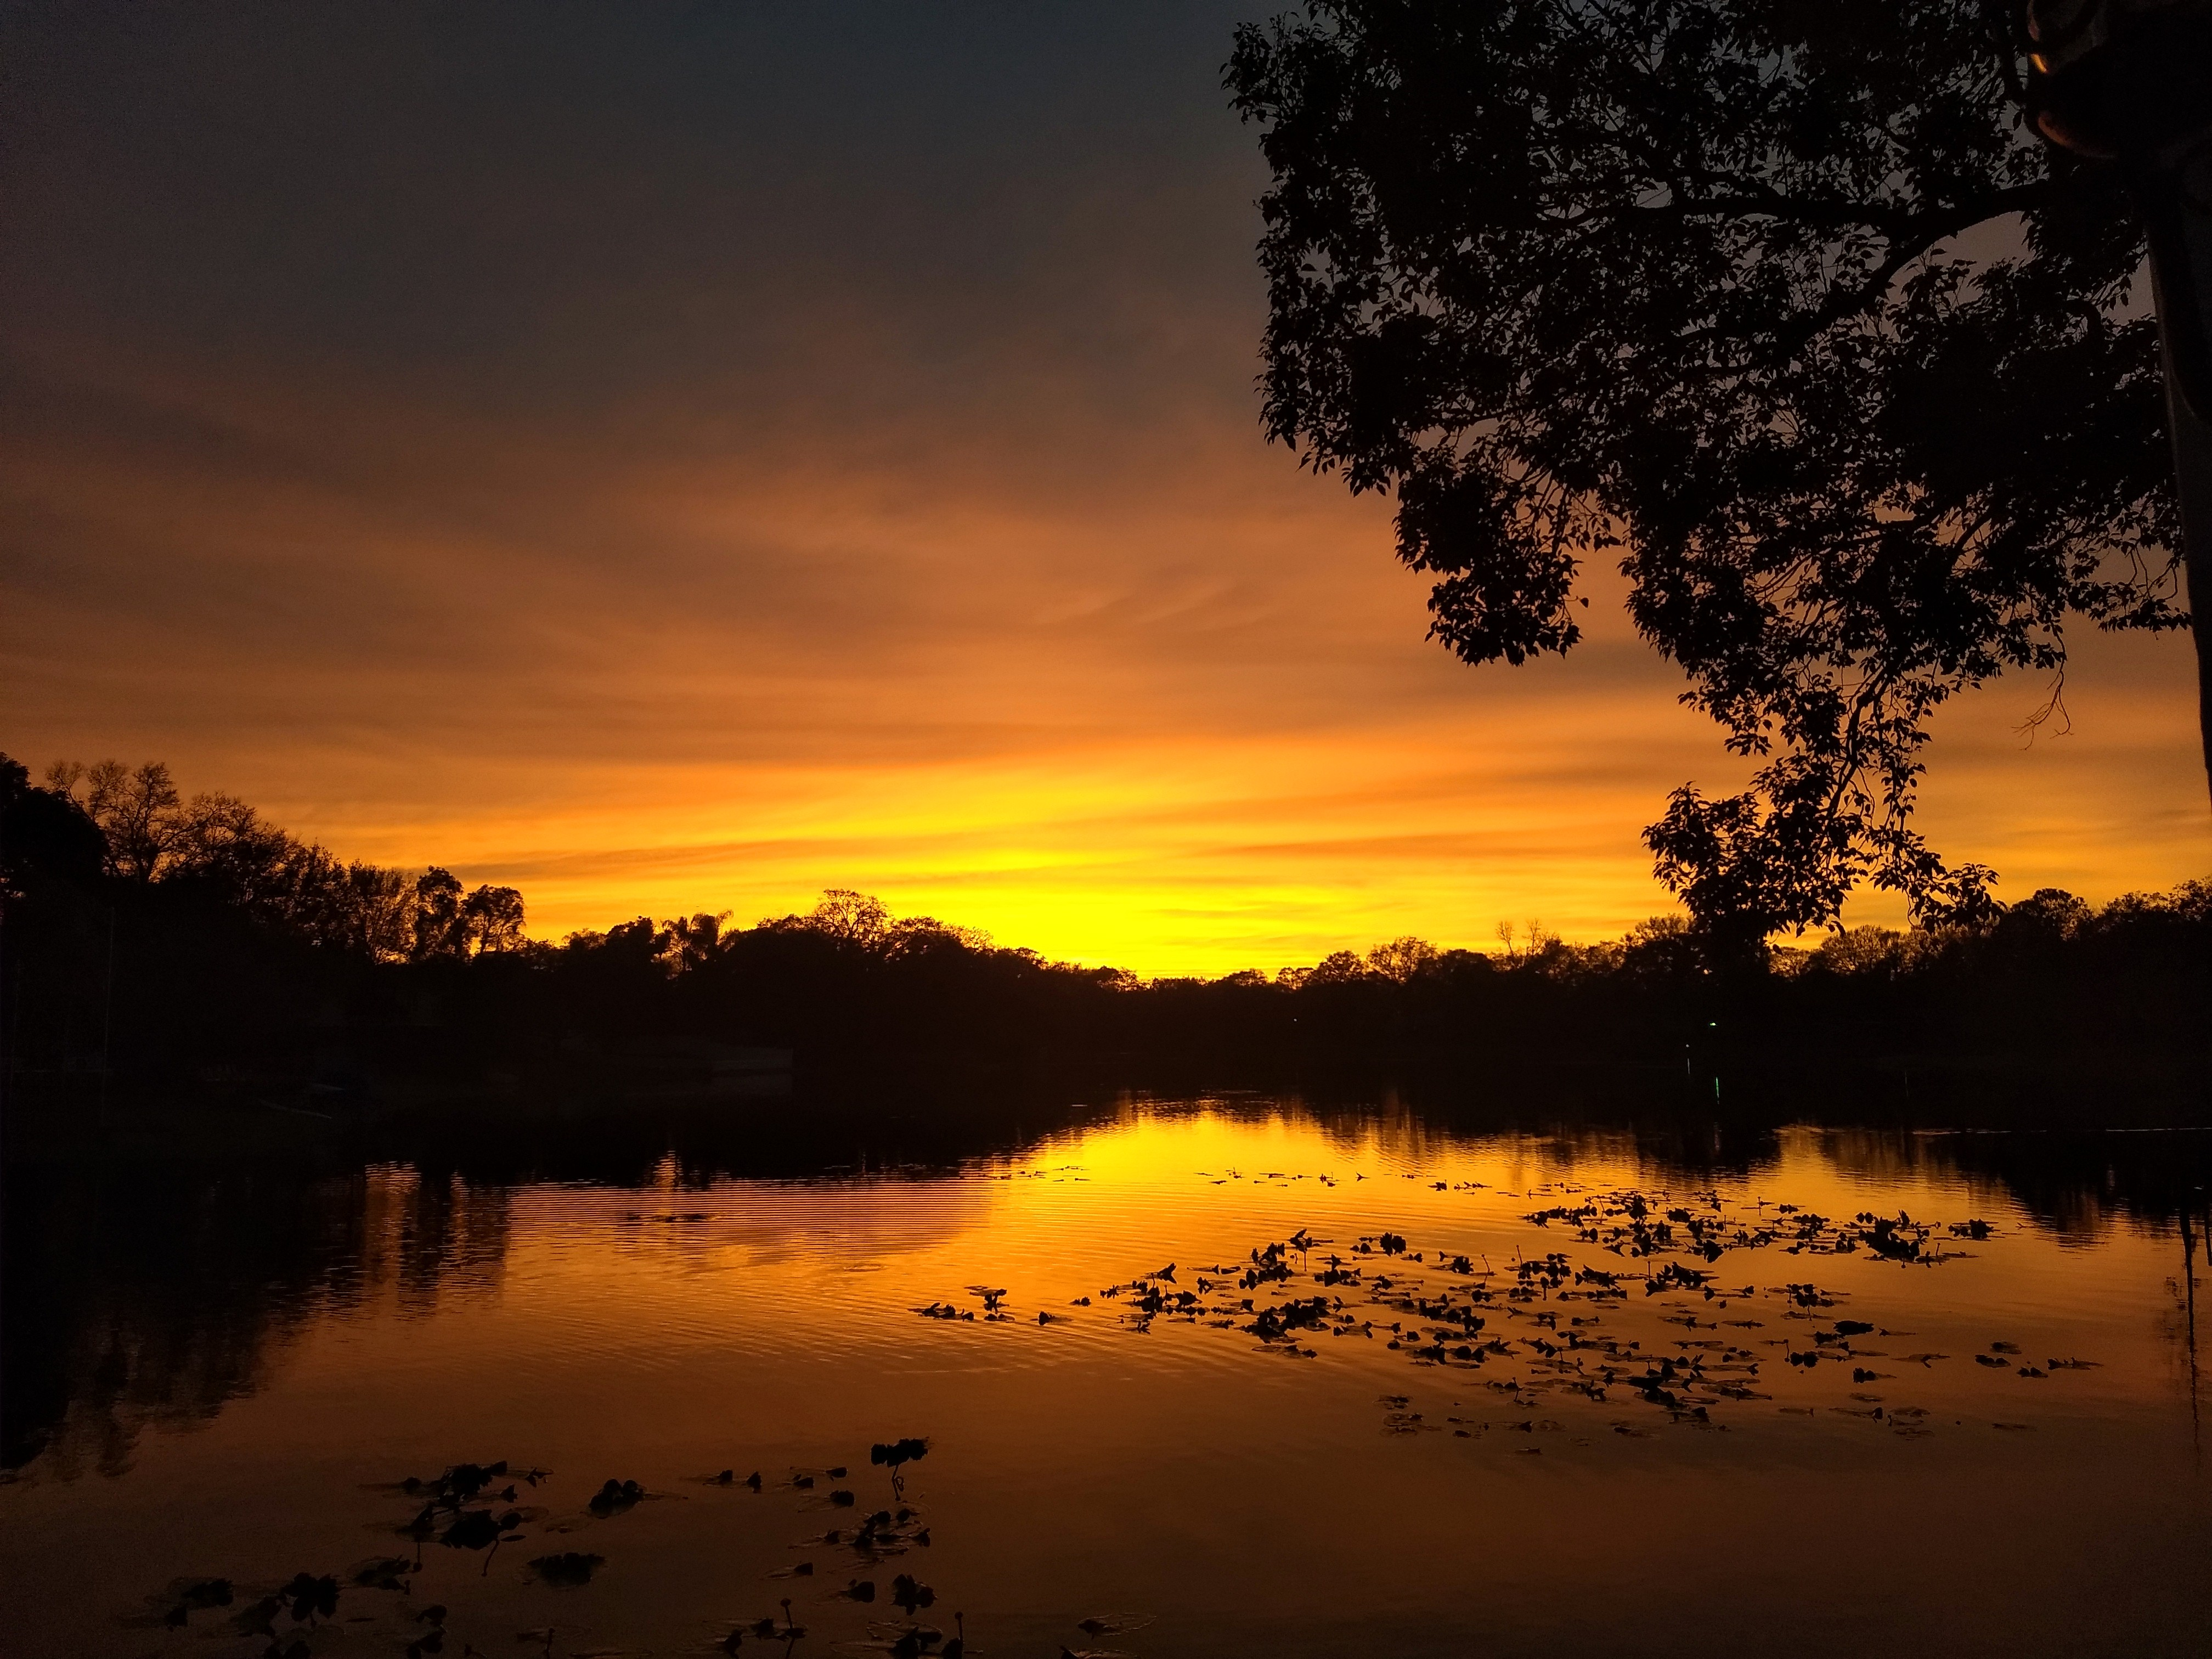 Sunset view from our backyard in Carrollwood, Tampa.